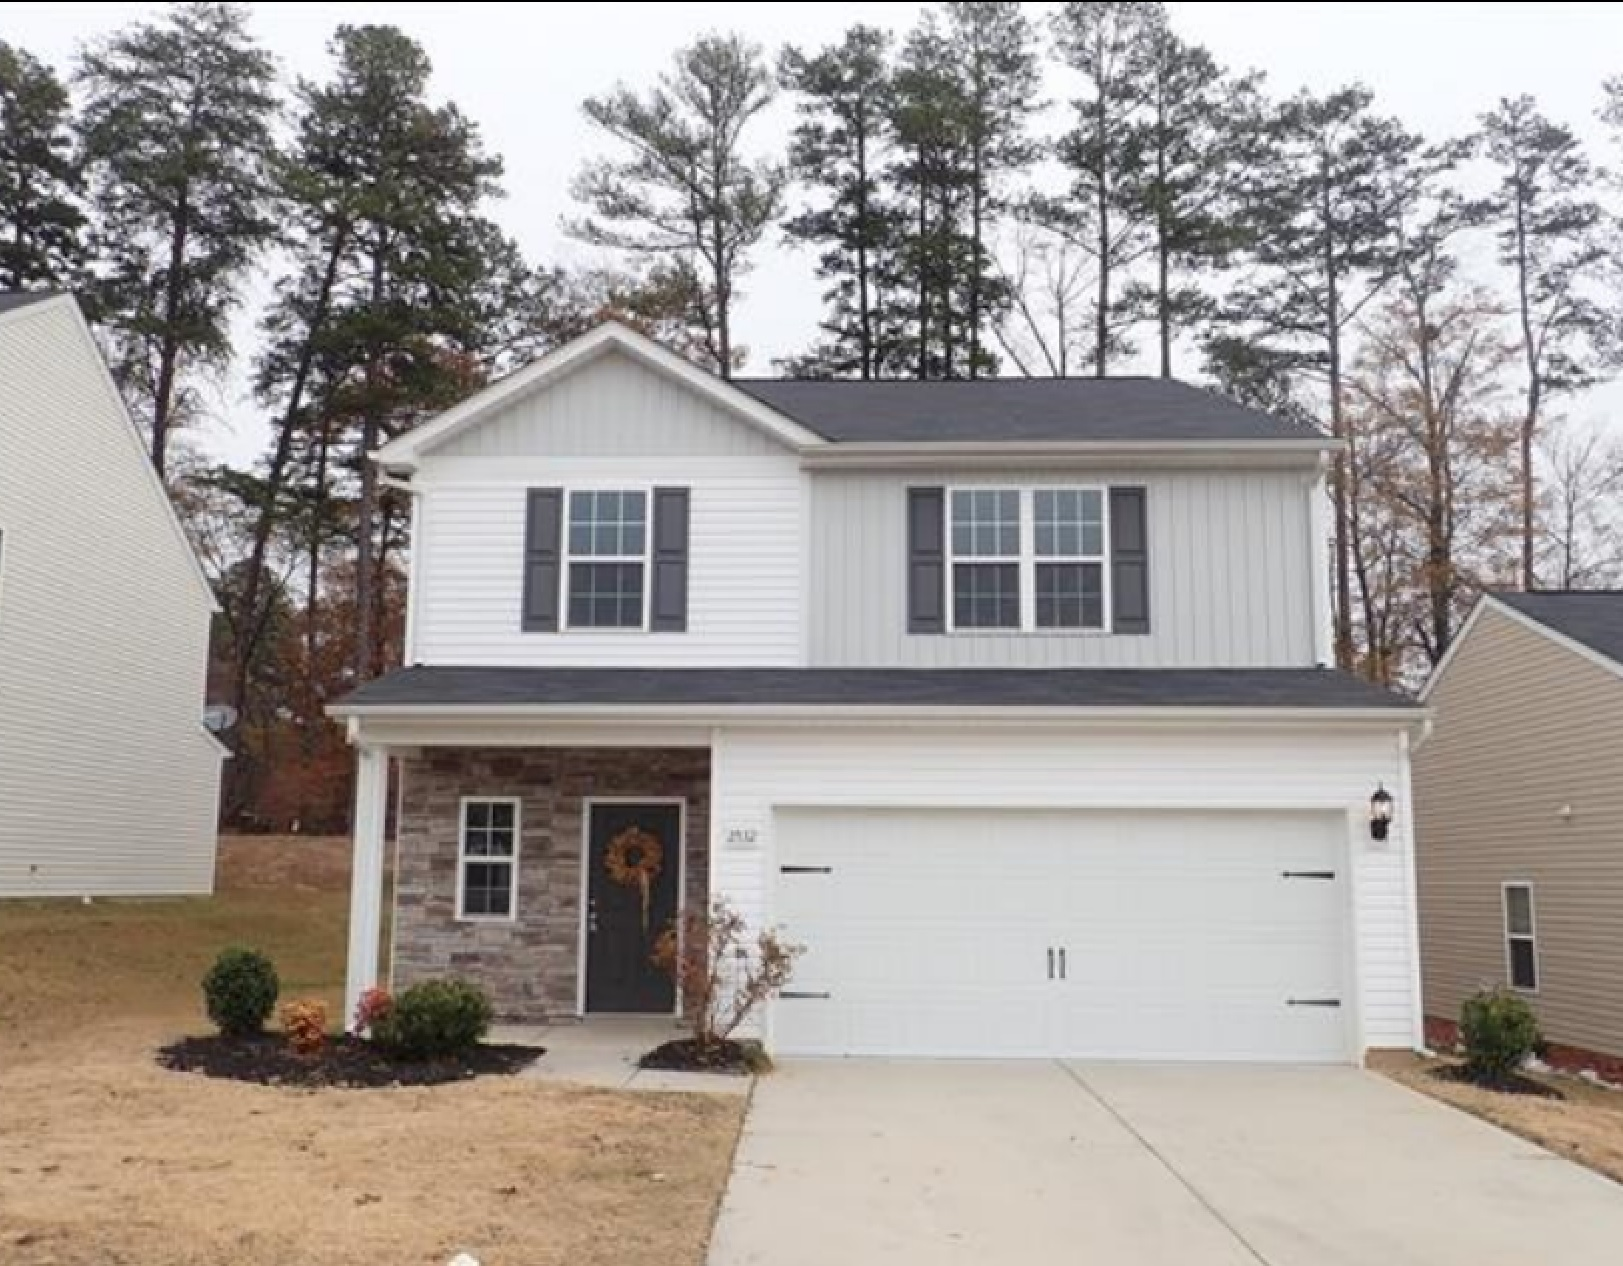 Sold By Nina Hollander, RE/MAX Executive 2532 Blue Moss Drive In Dallas, NC